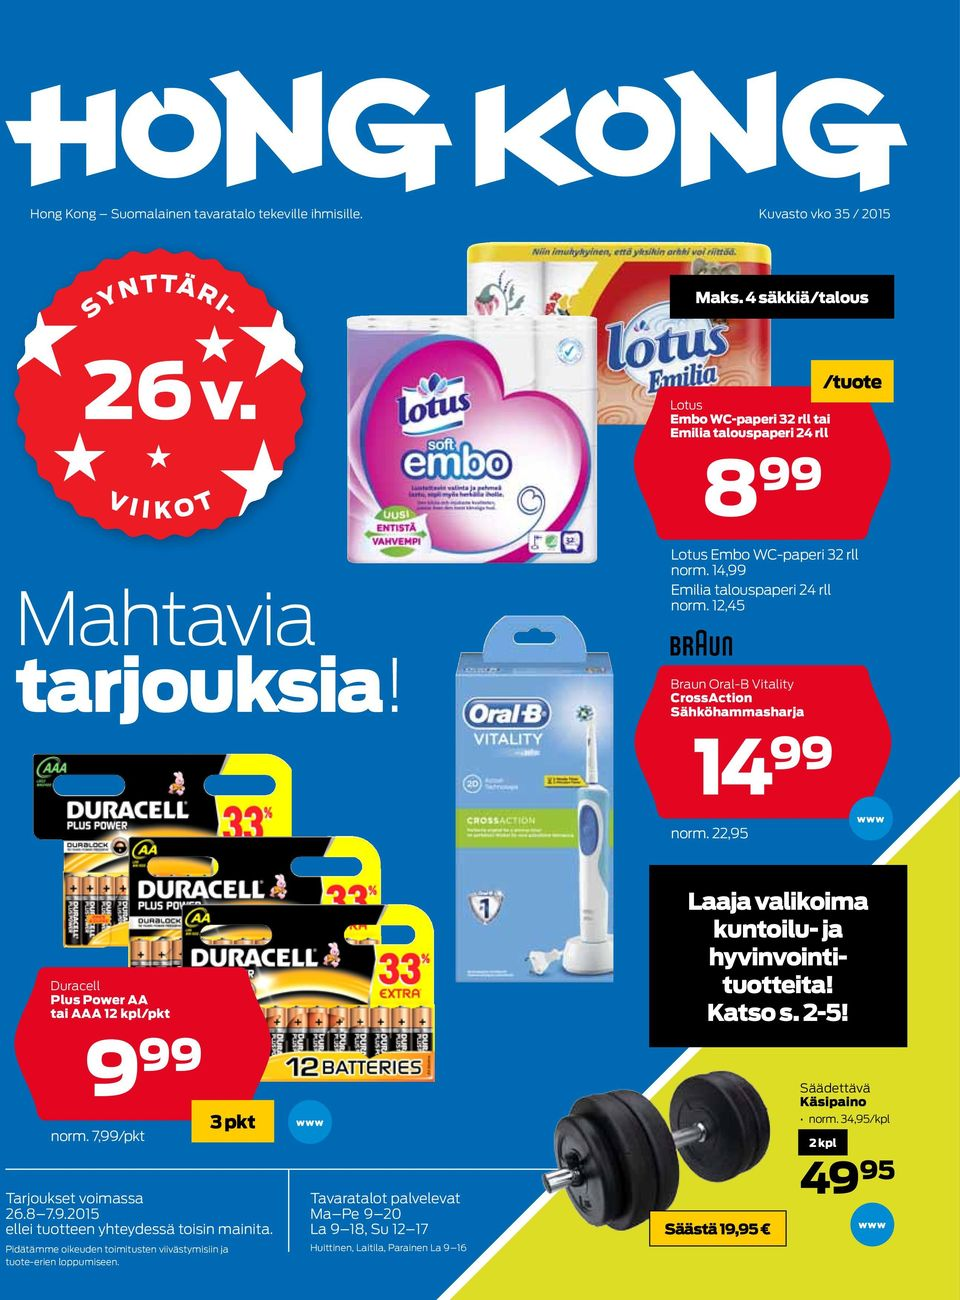 12,45 Braun Oral-B Vitality CrossAction Sähköhammasharja 14 99 norm. 22,95 /tuote Duracell Plus Power AA tai AAA 12 kpl/pkt 9 99 norm. 7,99/pkt Tarjoukset voimassa 26.8 7.9.2015 ellei tuotteen yhteydessä toisin mainita.